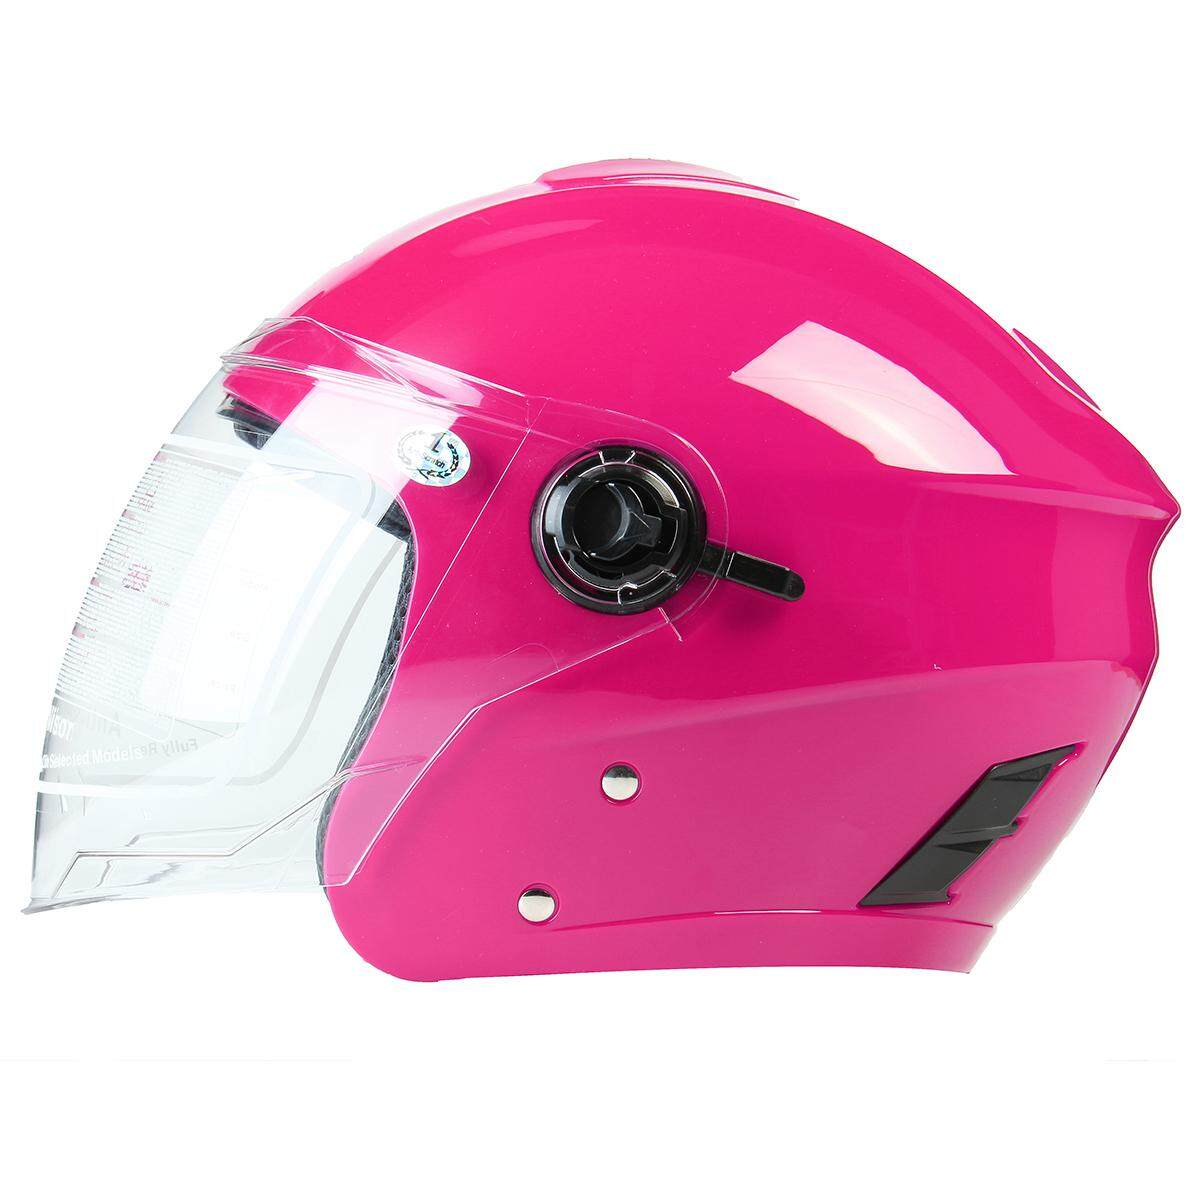 【11.11】 (Rose-Universal w/ double visor) Unisex Anti-UV Half Shell Open Face Security Motor Helmet For Harley Motorcycle Motorcross Electrombile Chopper Cruiser Cycling Scooter